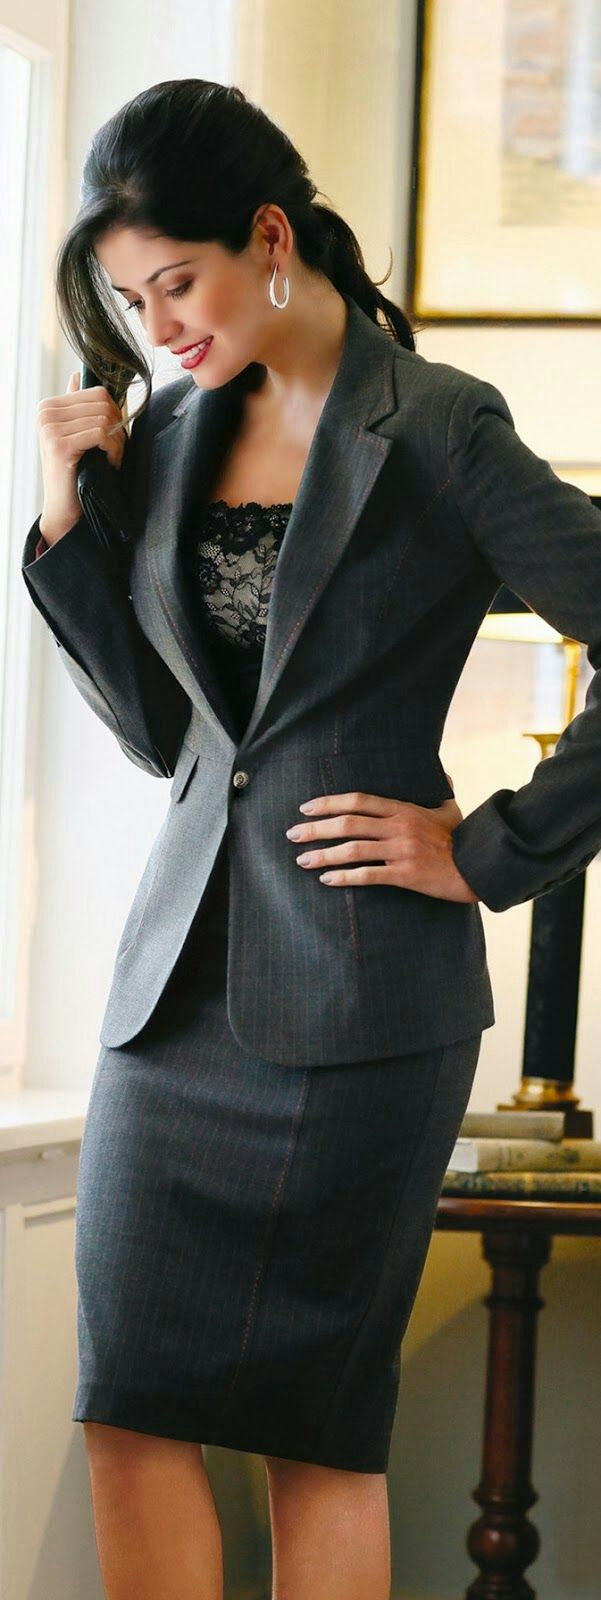 How to be the Best Dressed Employee in the Workplace